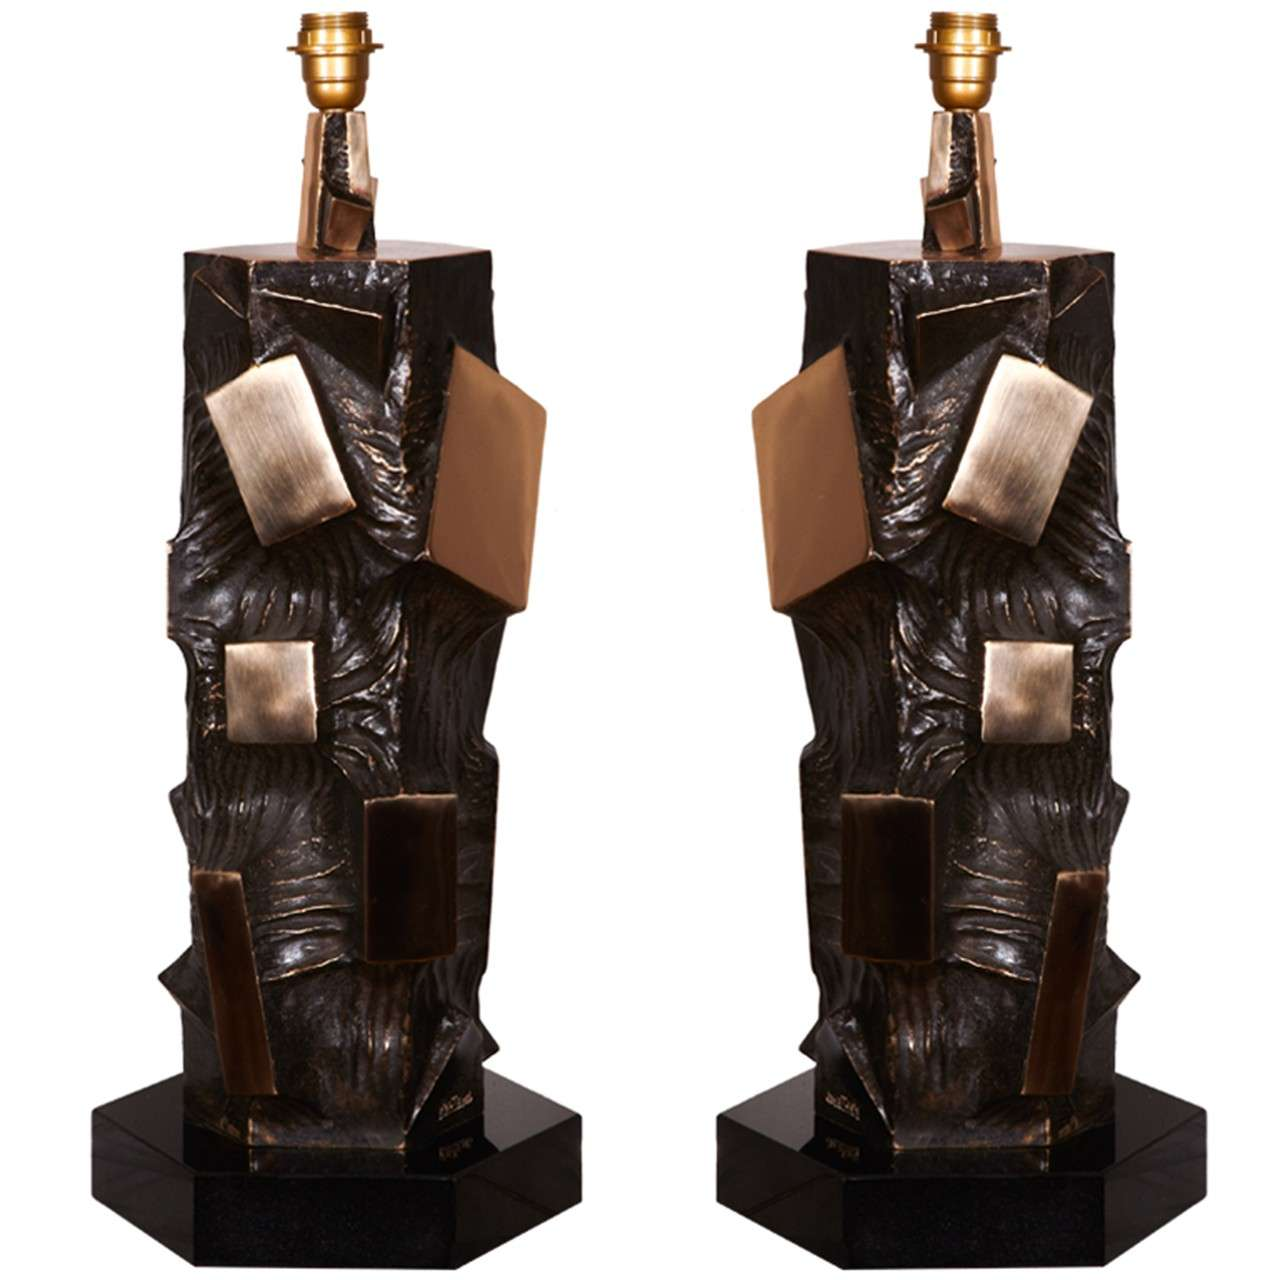 Awesome Pair of Lamps by Martens